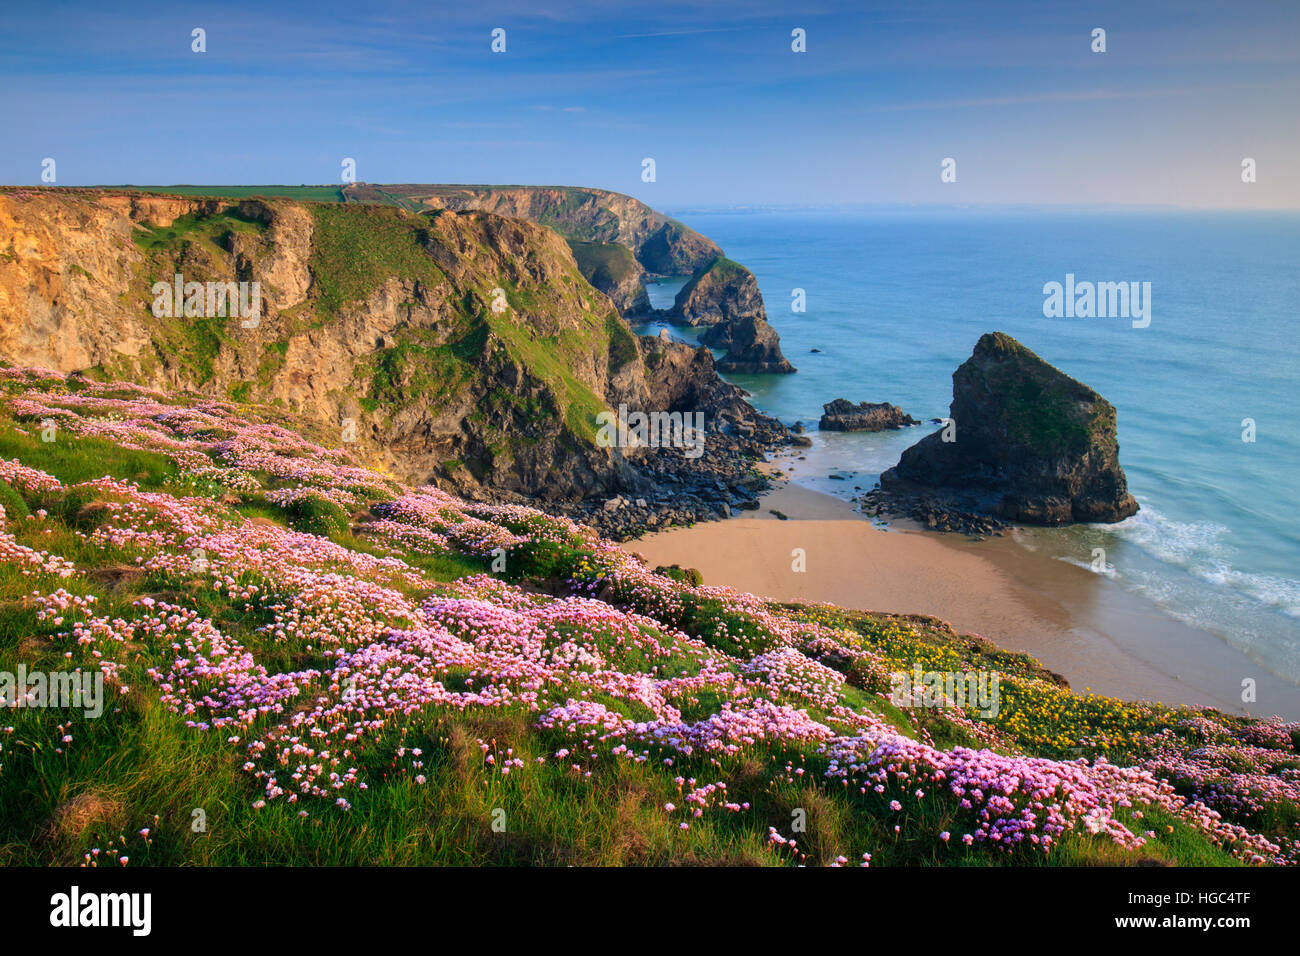 Thrift at Bedruthan Steps in Cornwall. - Stock Image